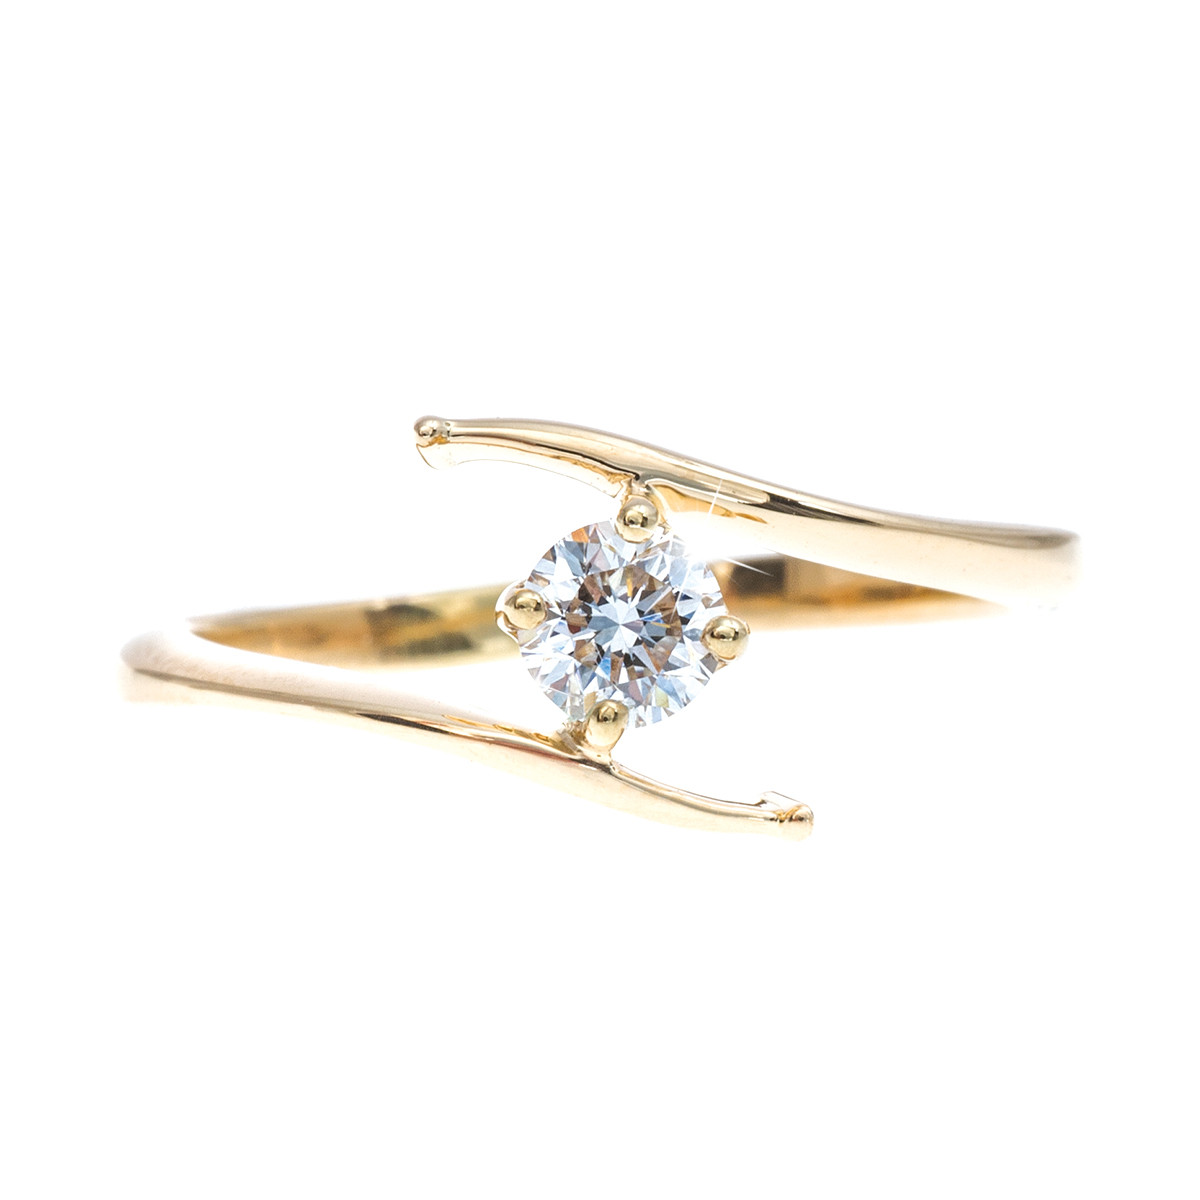 Vintage 18k gold ring set with a 0.26 ct diamond